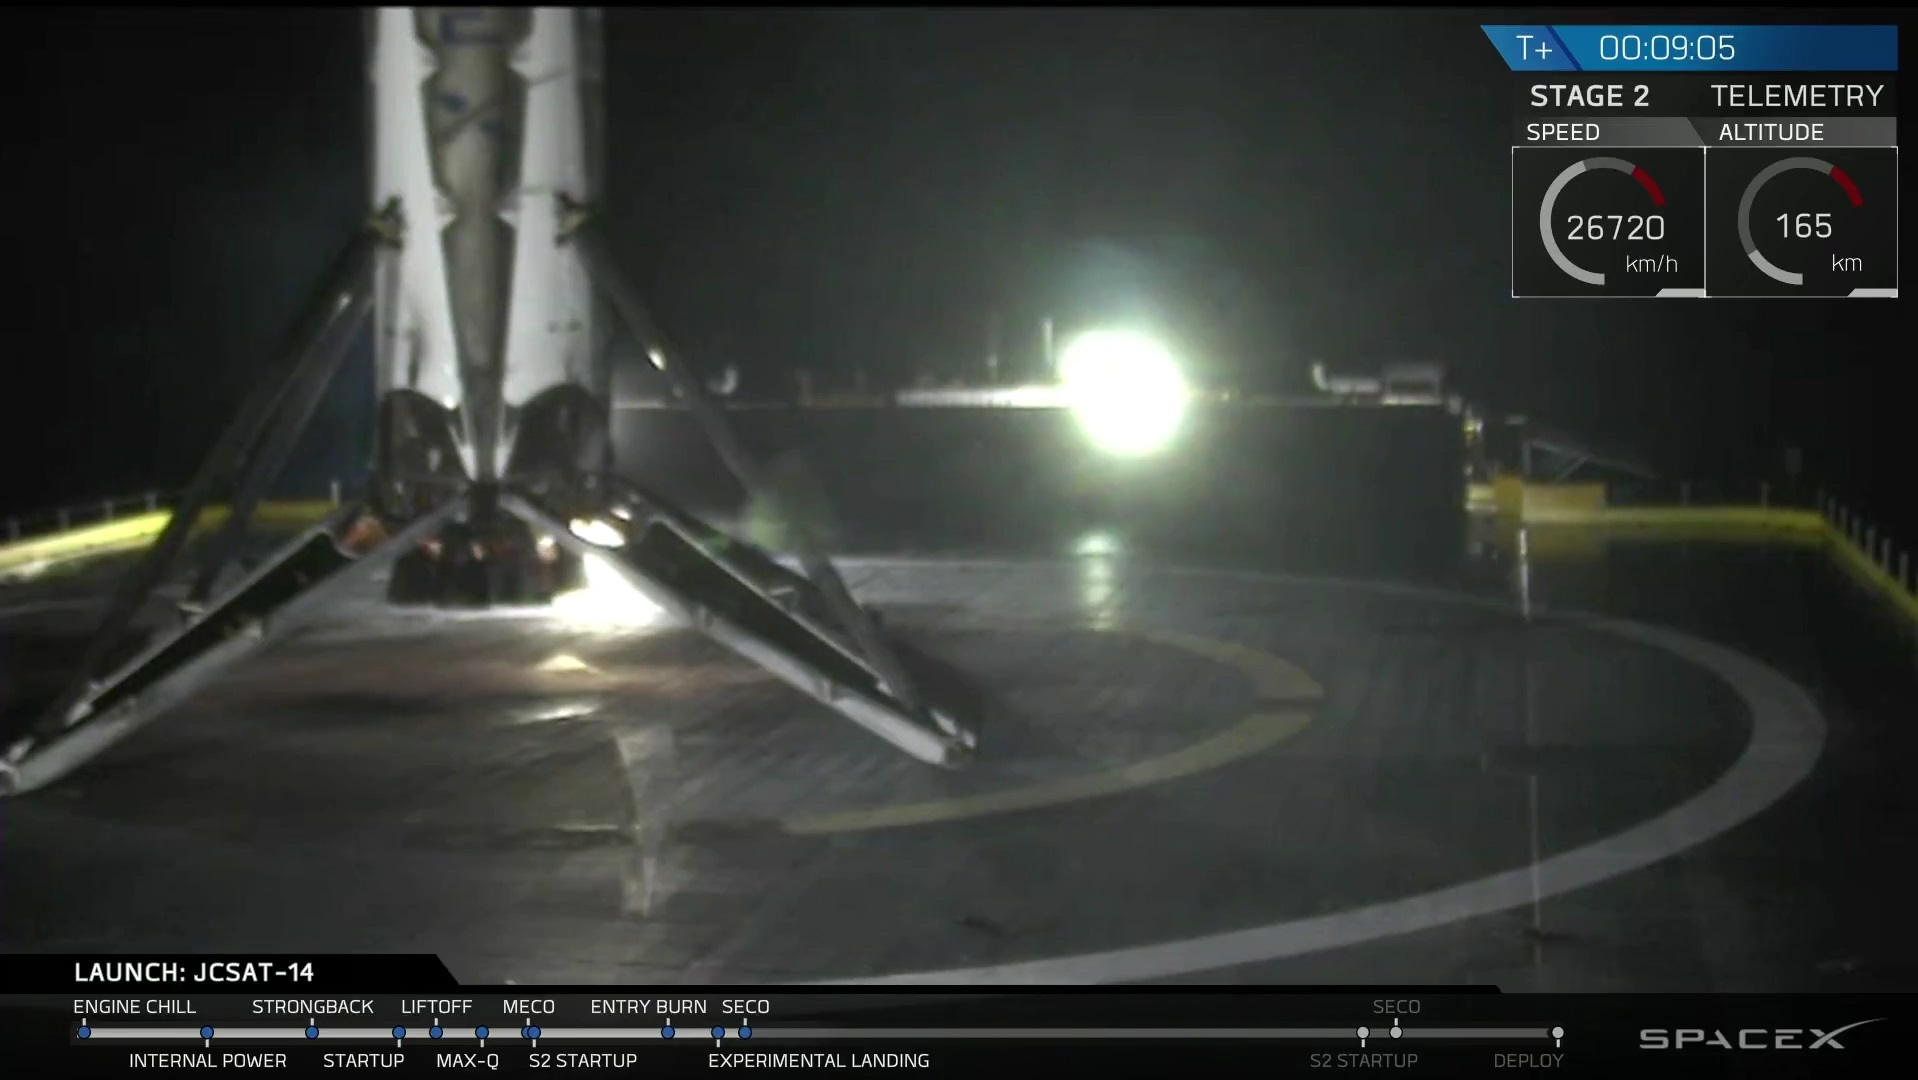 Falcon 9 First Stage Rests On The Drone Ship After Mastering A Challenging Landing Sequence